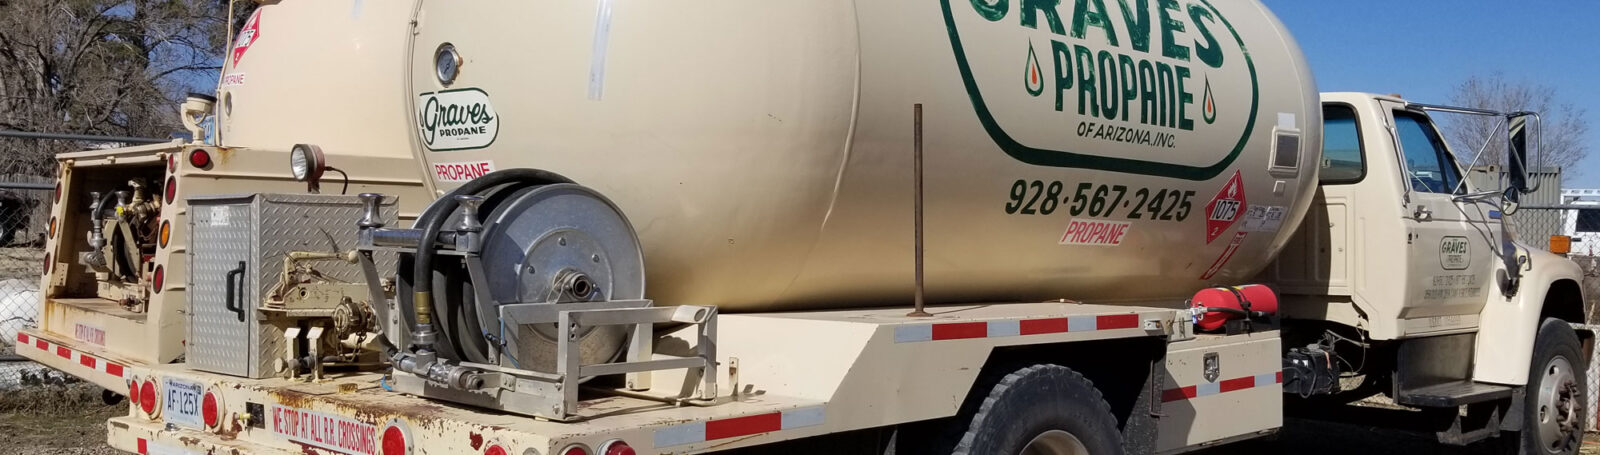 Flagstaff Propane Delivery Truck